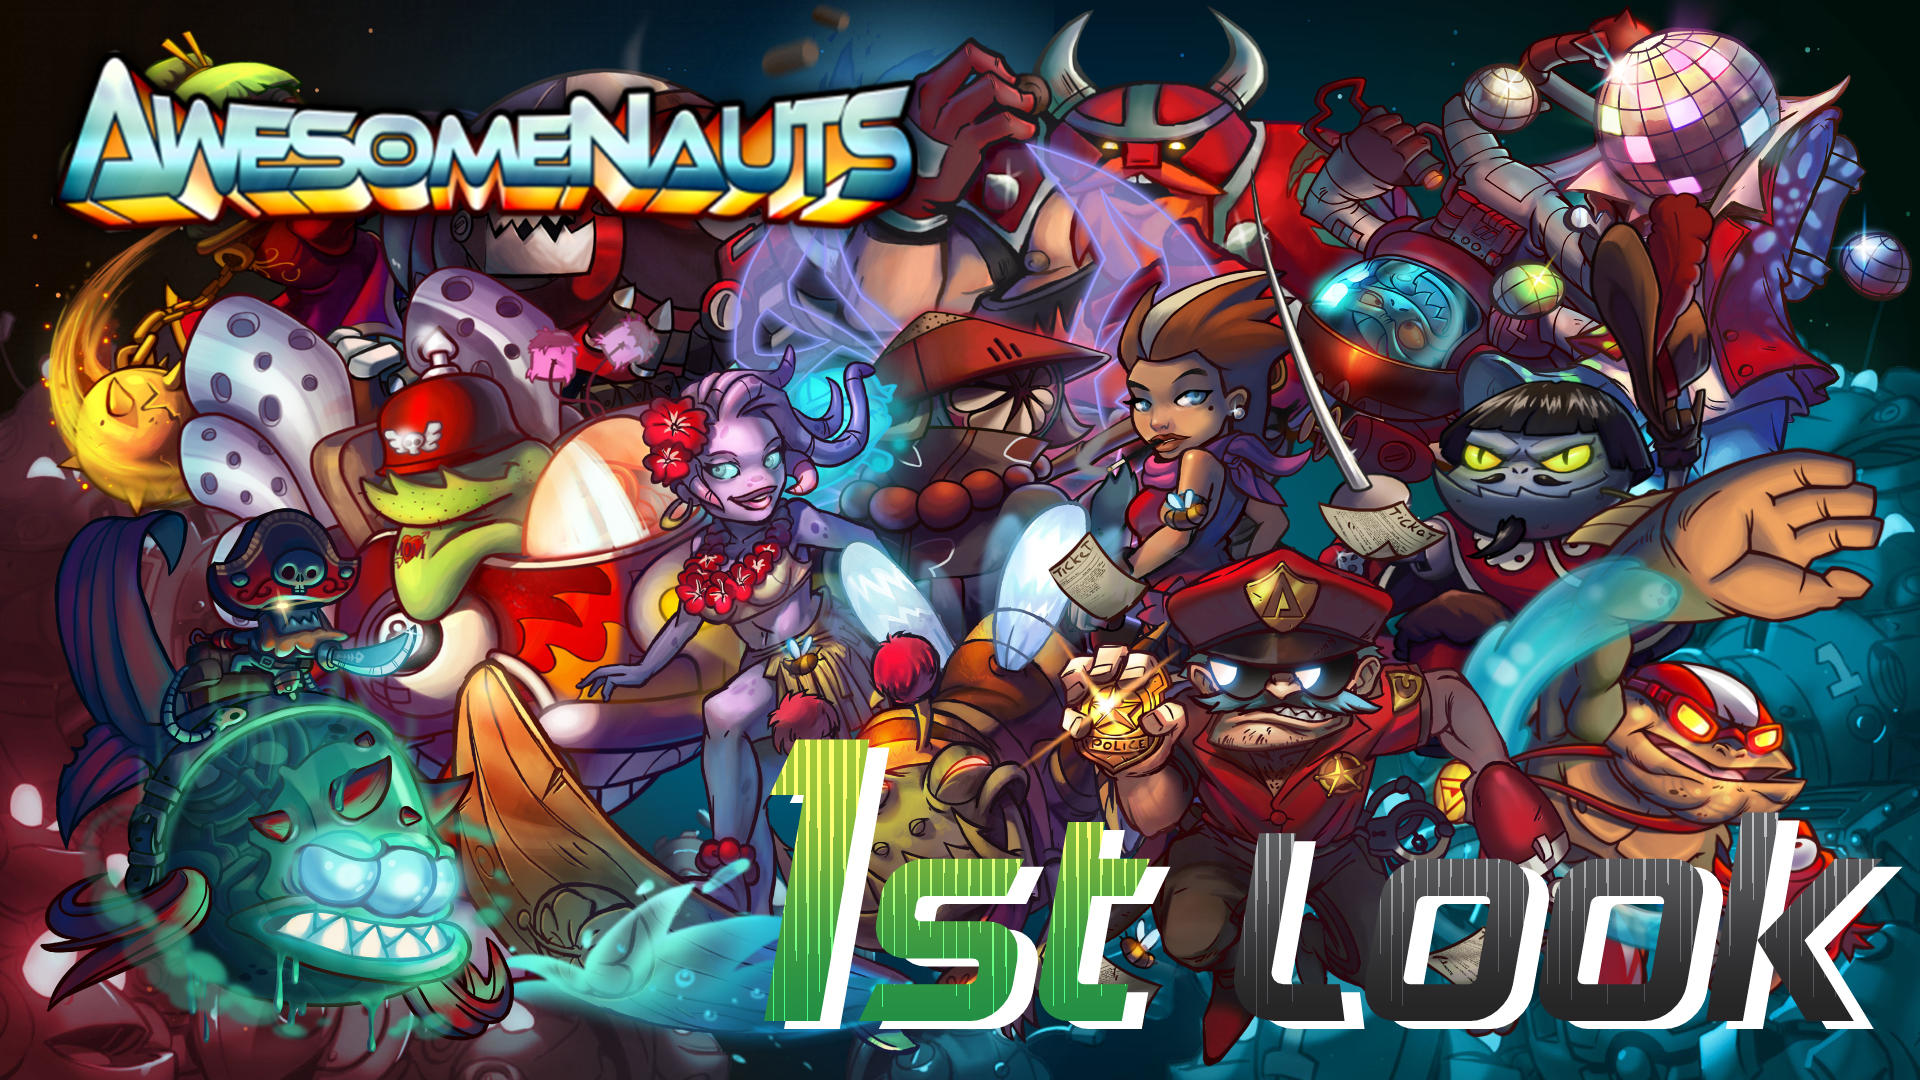 Awesomenauts - First Look